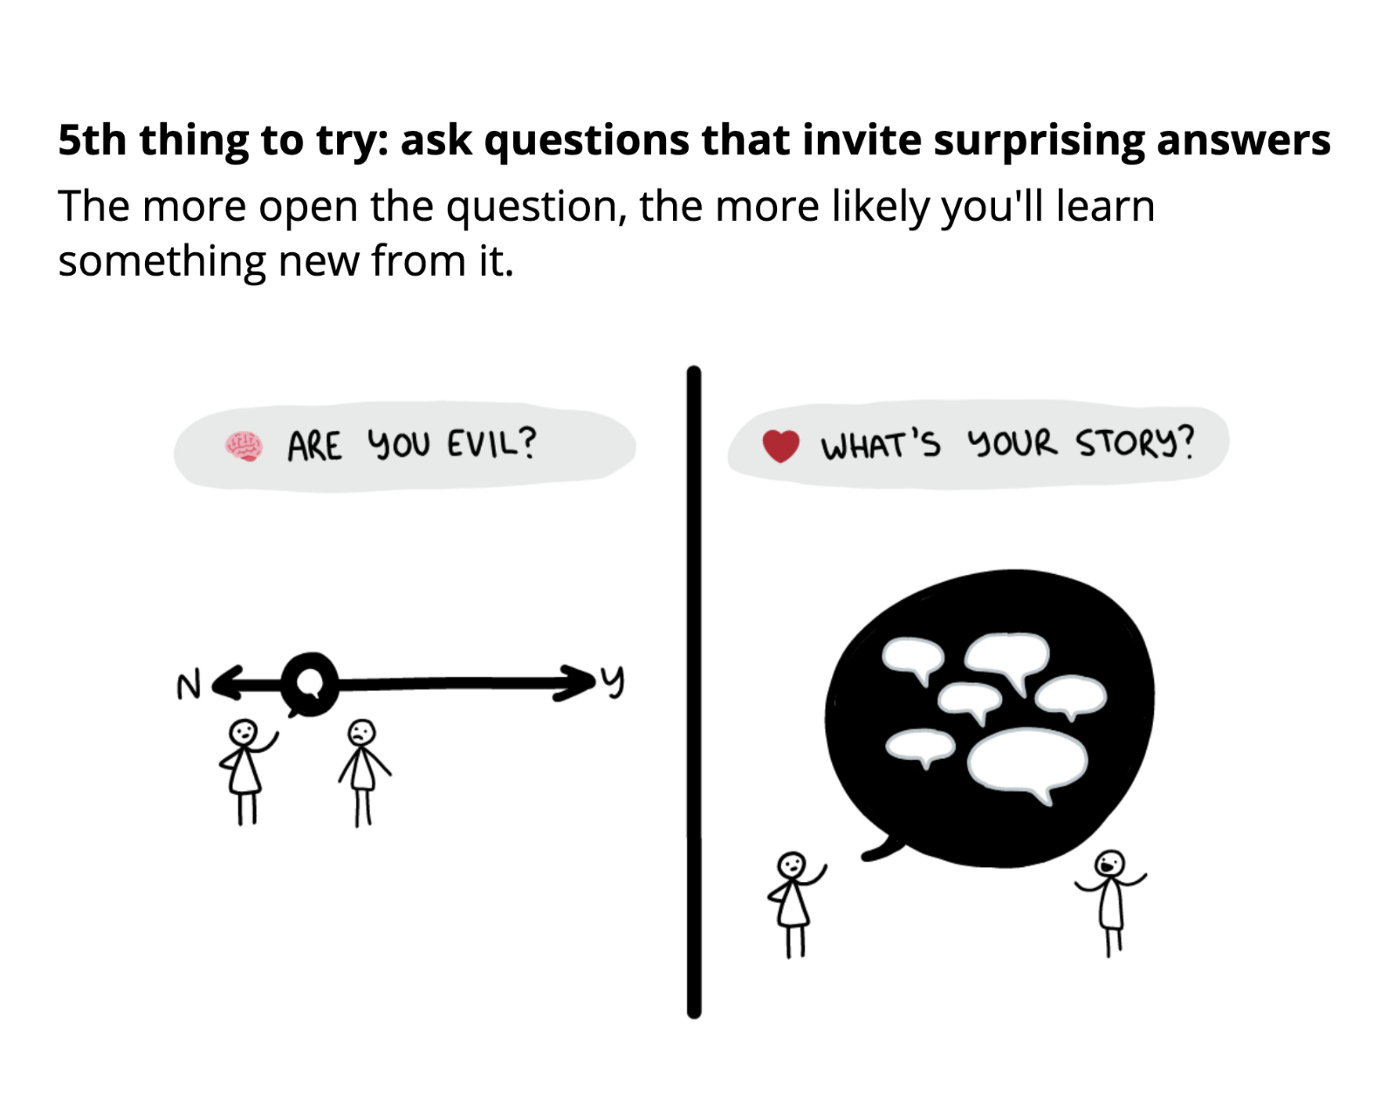 5th thing to try: ask questions that invite surprising answers